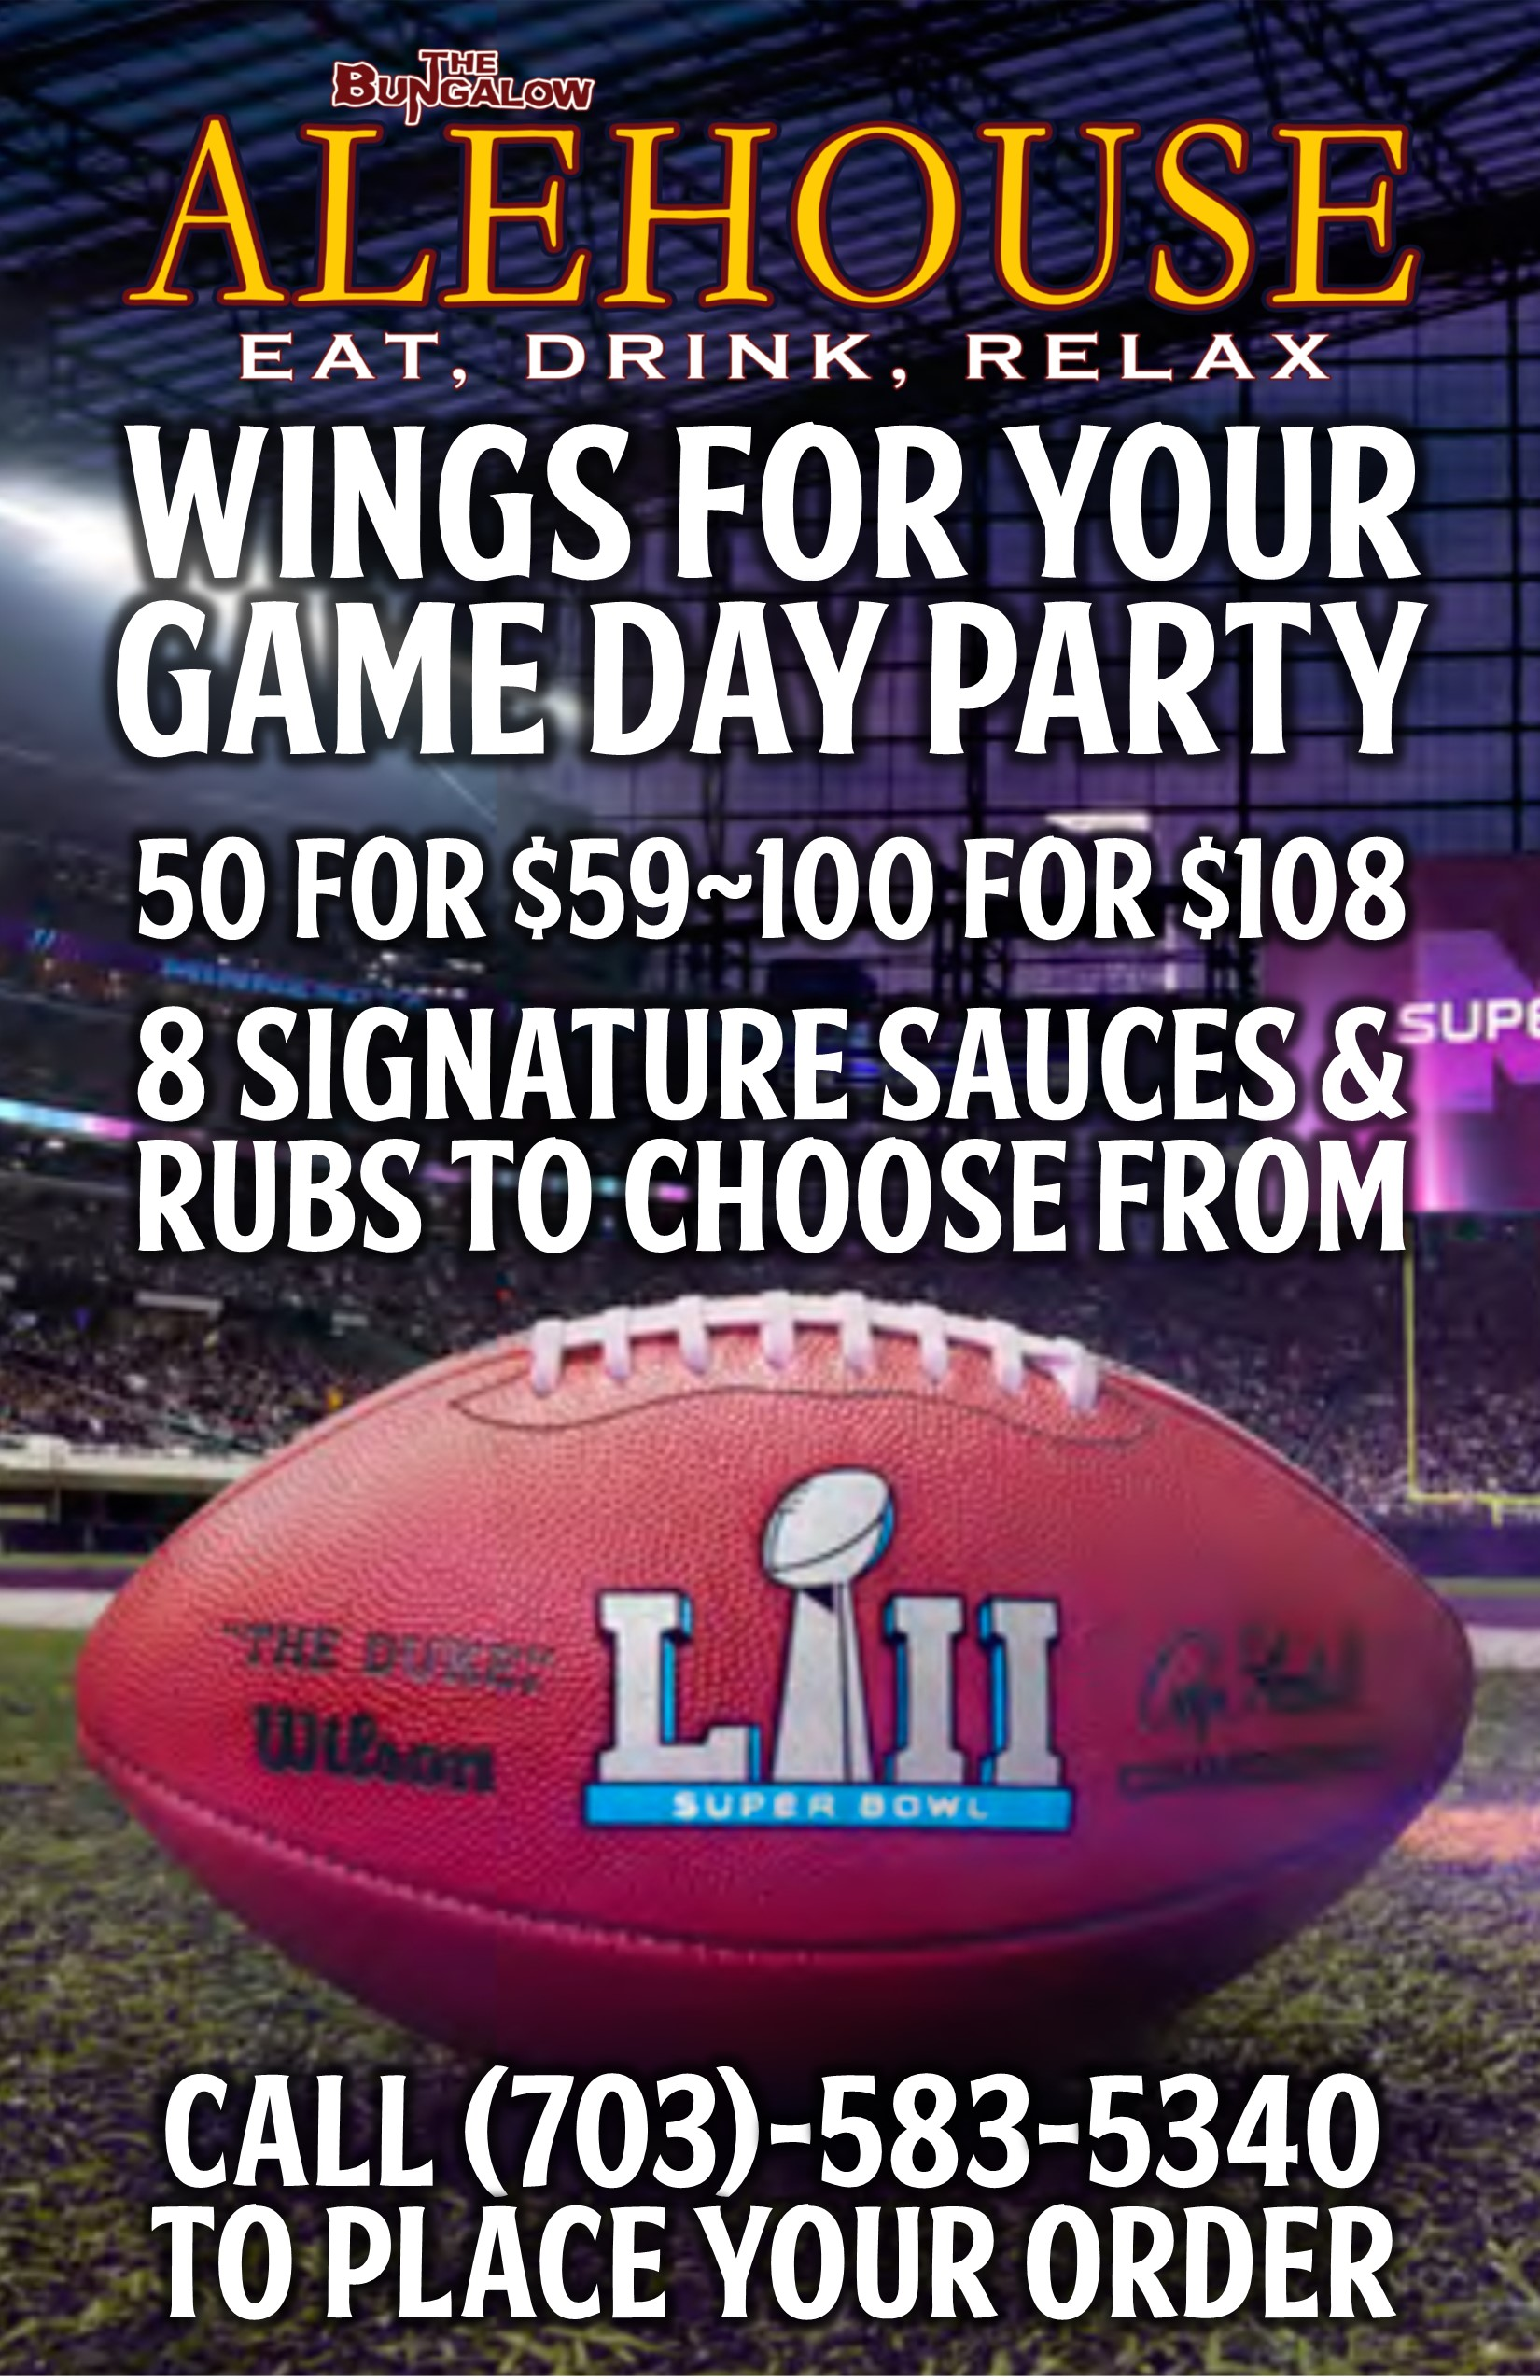 Super Bowl wings PM